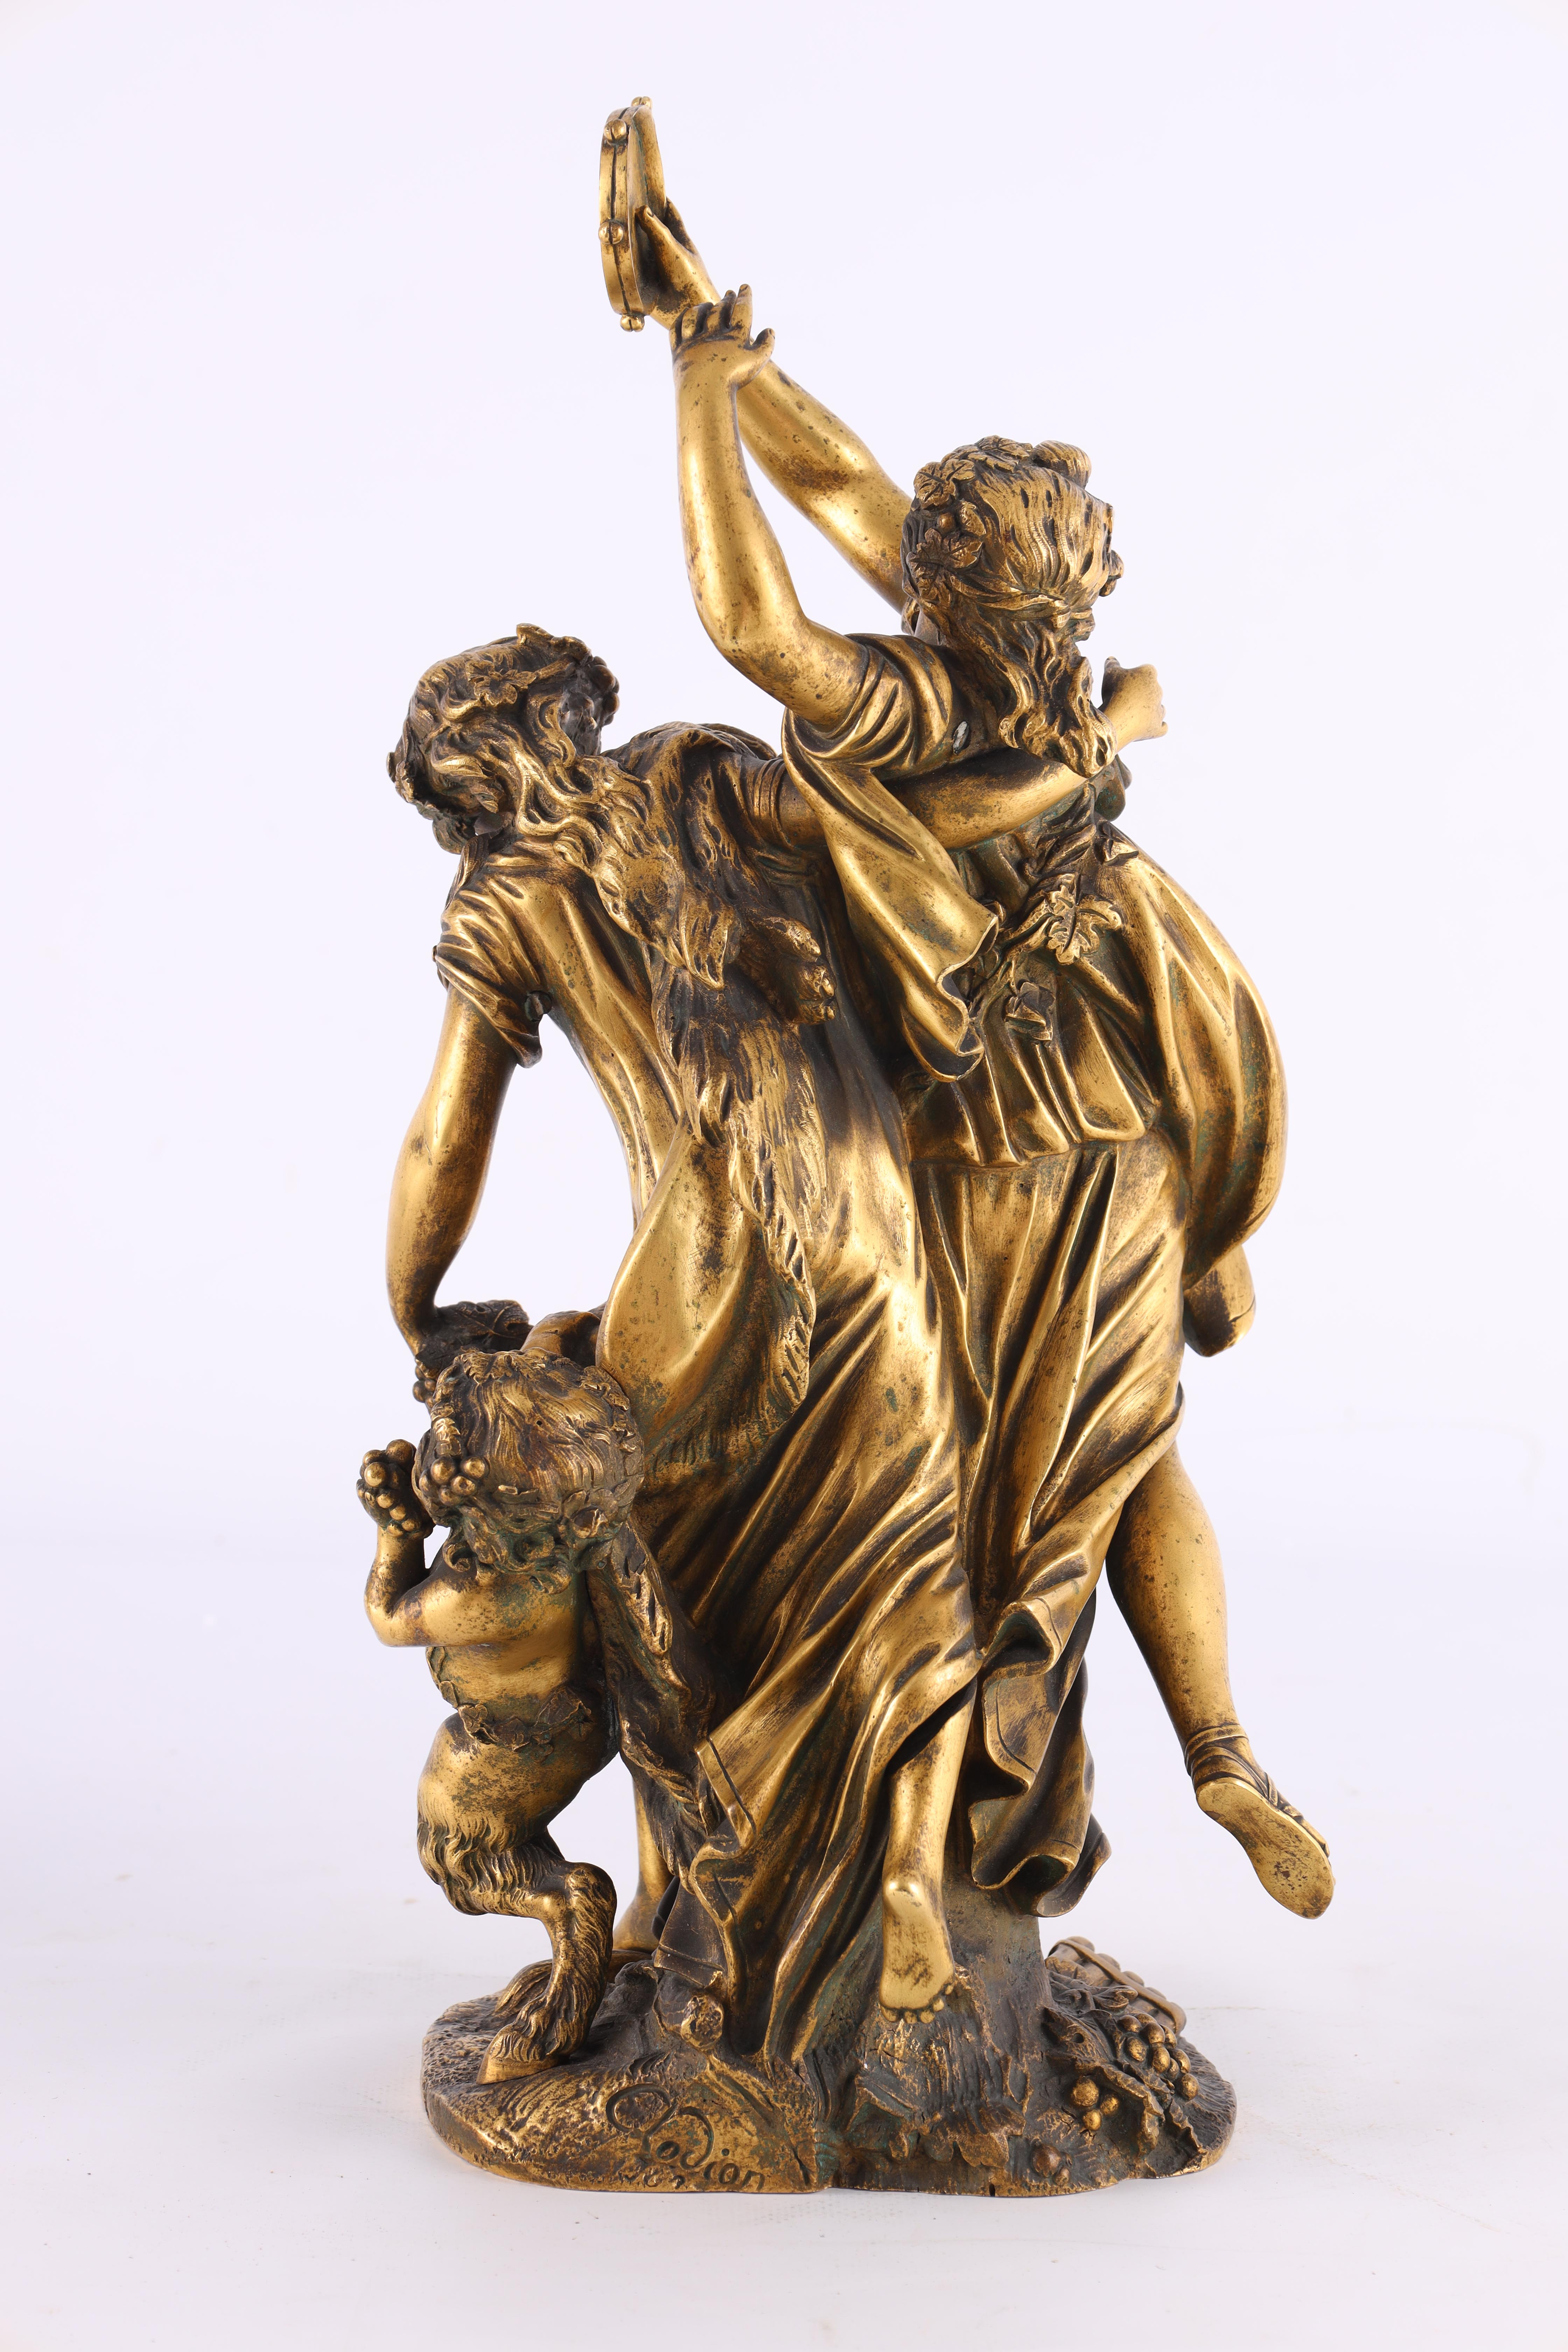 AFTER MICHAEL CLAUDE CLODION A LATE 19TH CENTURY FRENCH GILT BRONZE SCULPTURE titled 'Bacchanalia' - Image 4 of 10